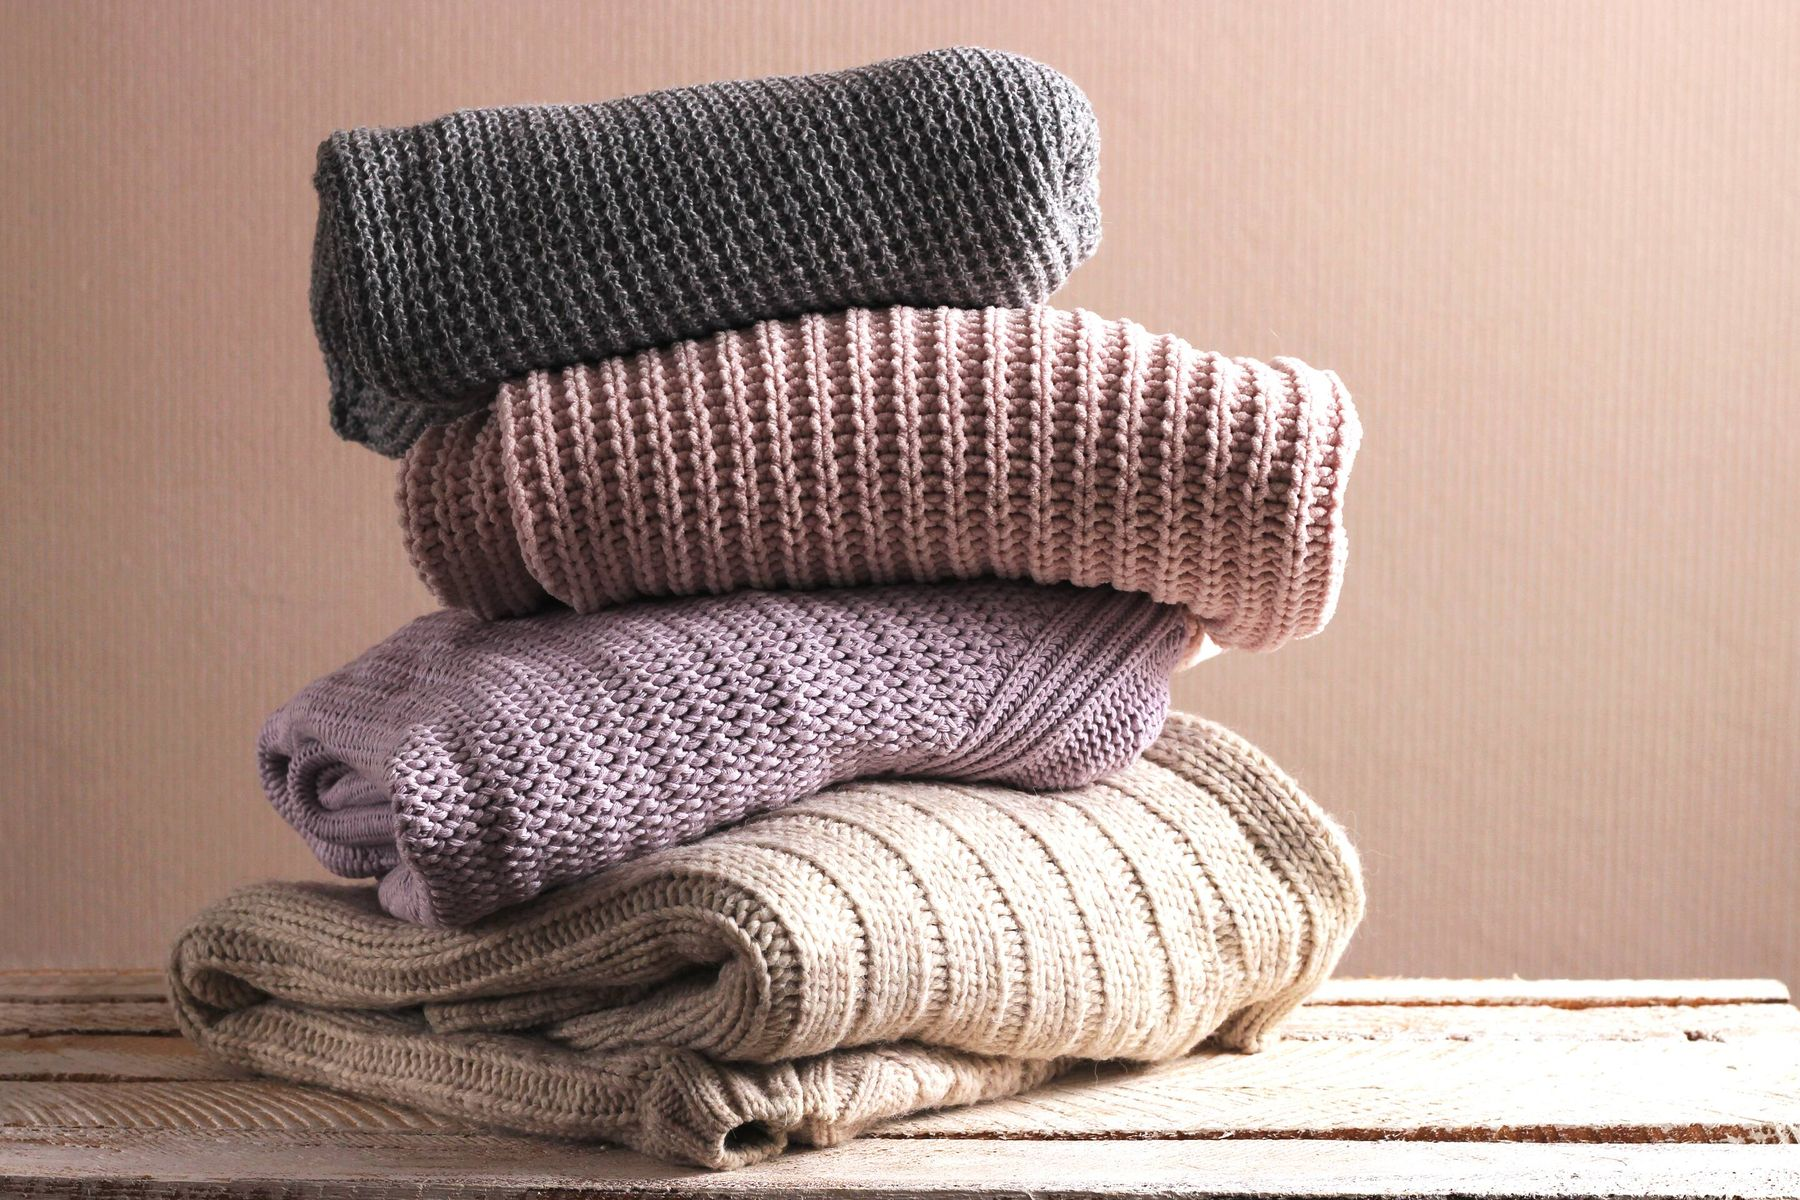 How to Wash Your Woollen Sweater Without Shrinking It